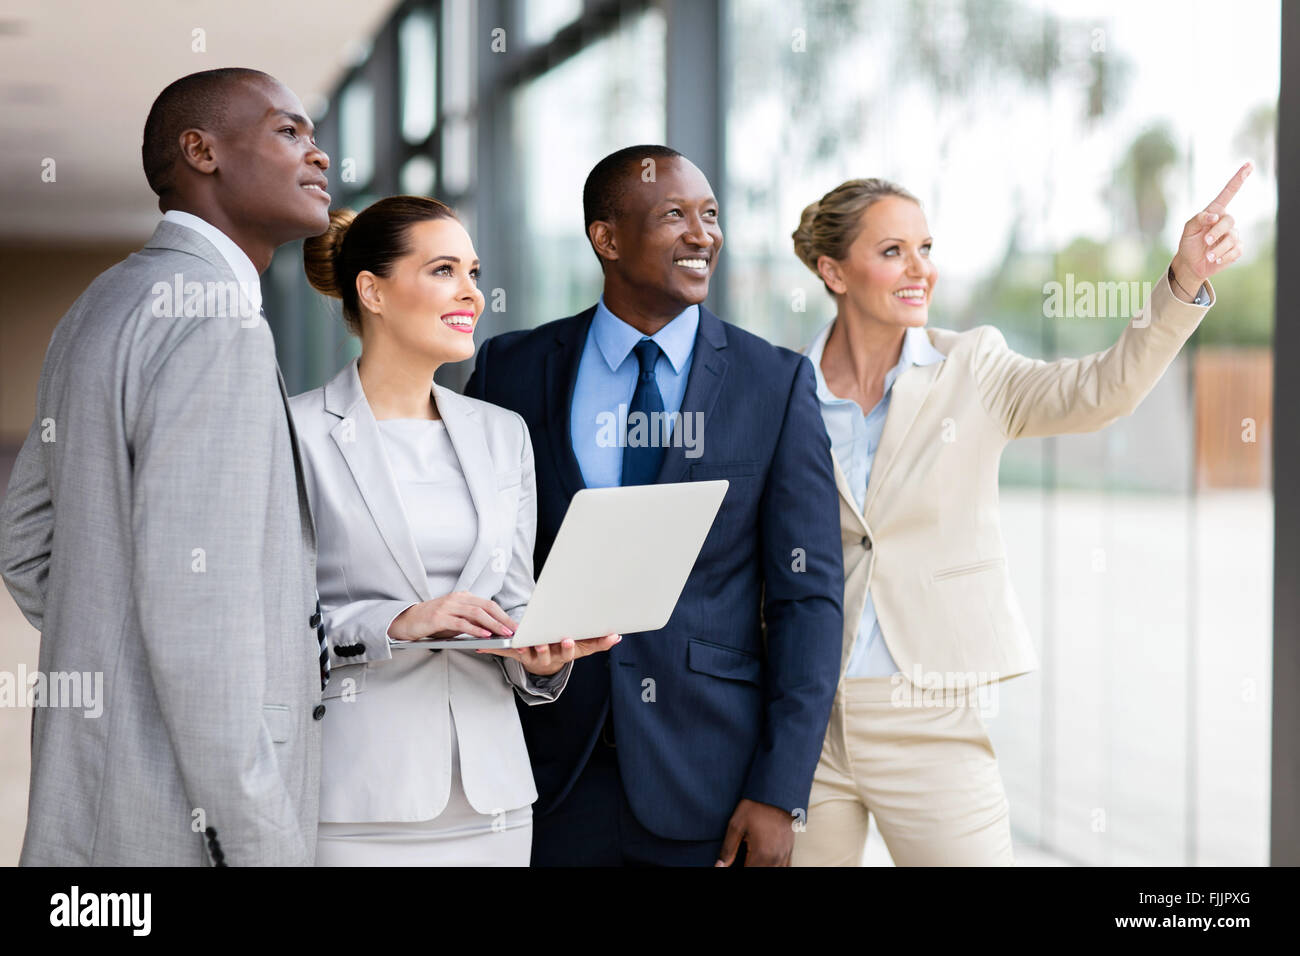 group of successful corporate workers discussing work in modern office - Stock Image